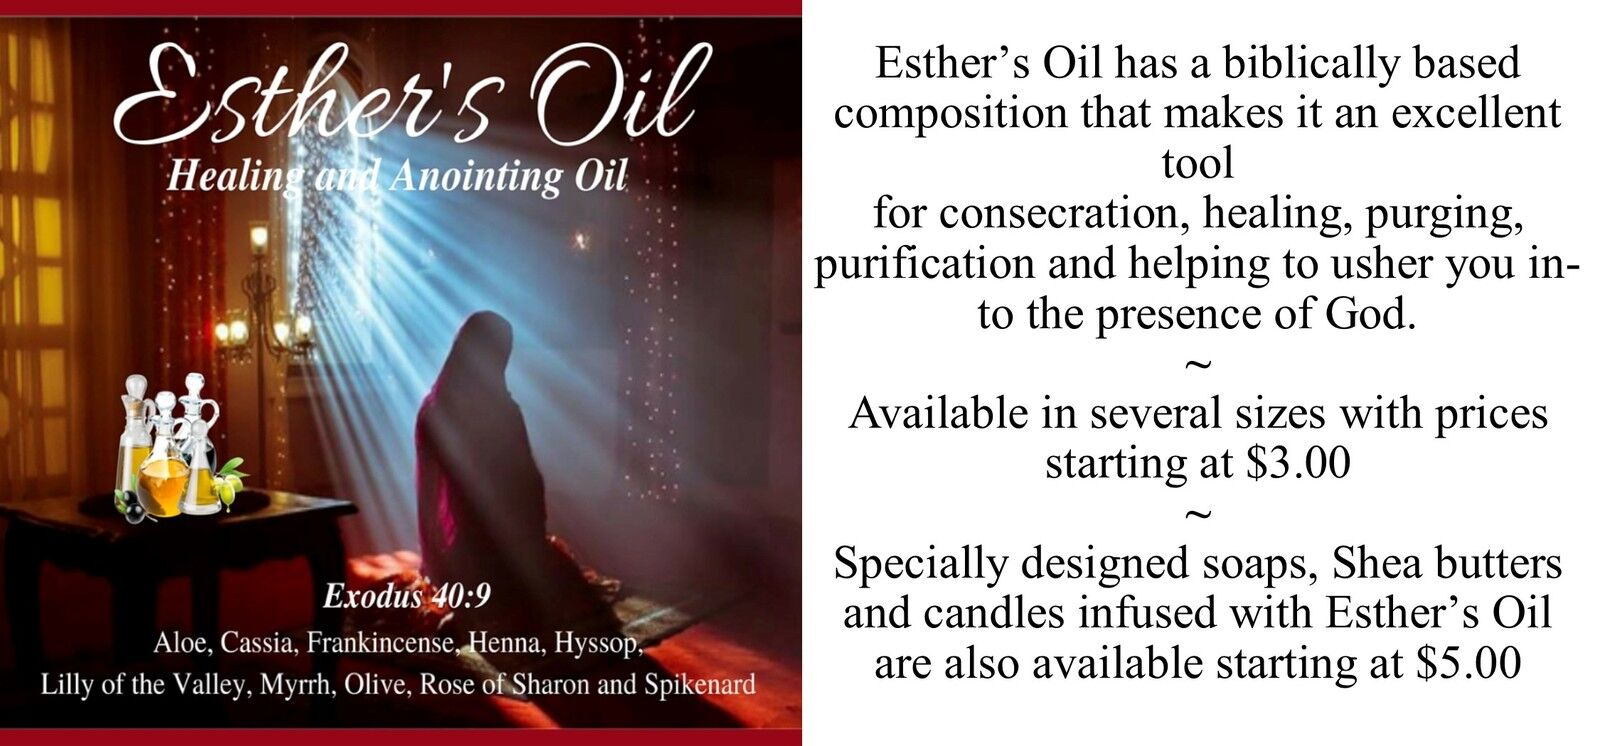 Esther's Oil